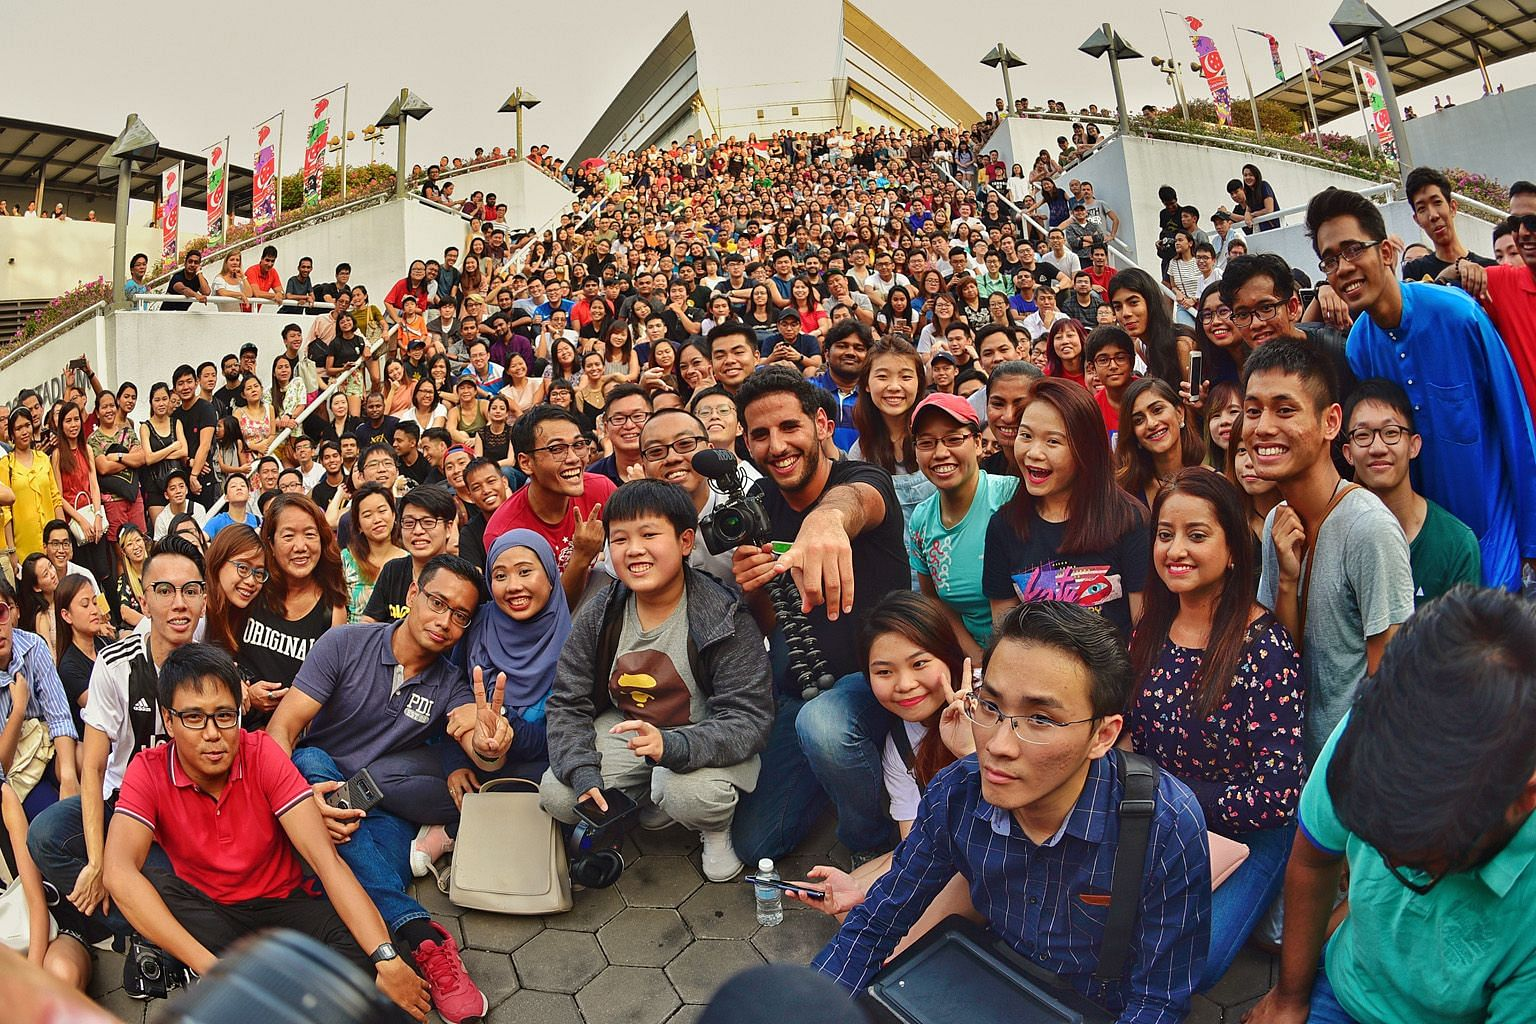 Mr Nuseir Yassin (in front row, wearing a black T-shirt) with his online followers outside the Singapore Indoor Stadium last month.